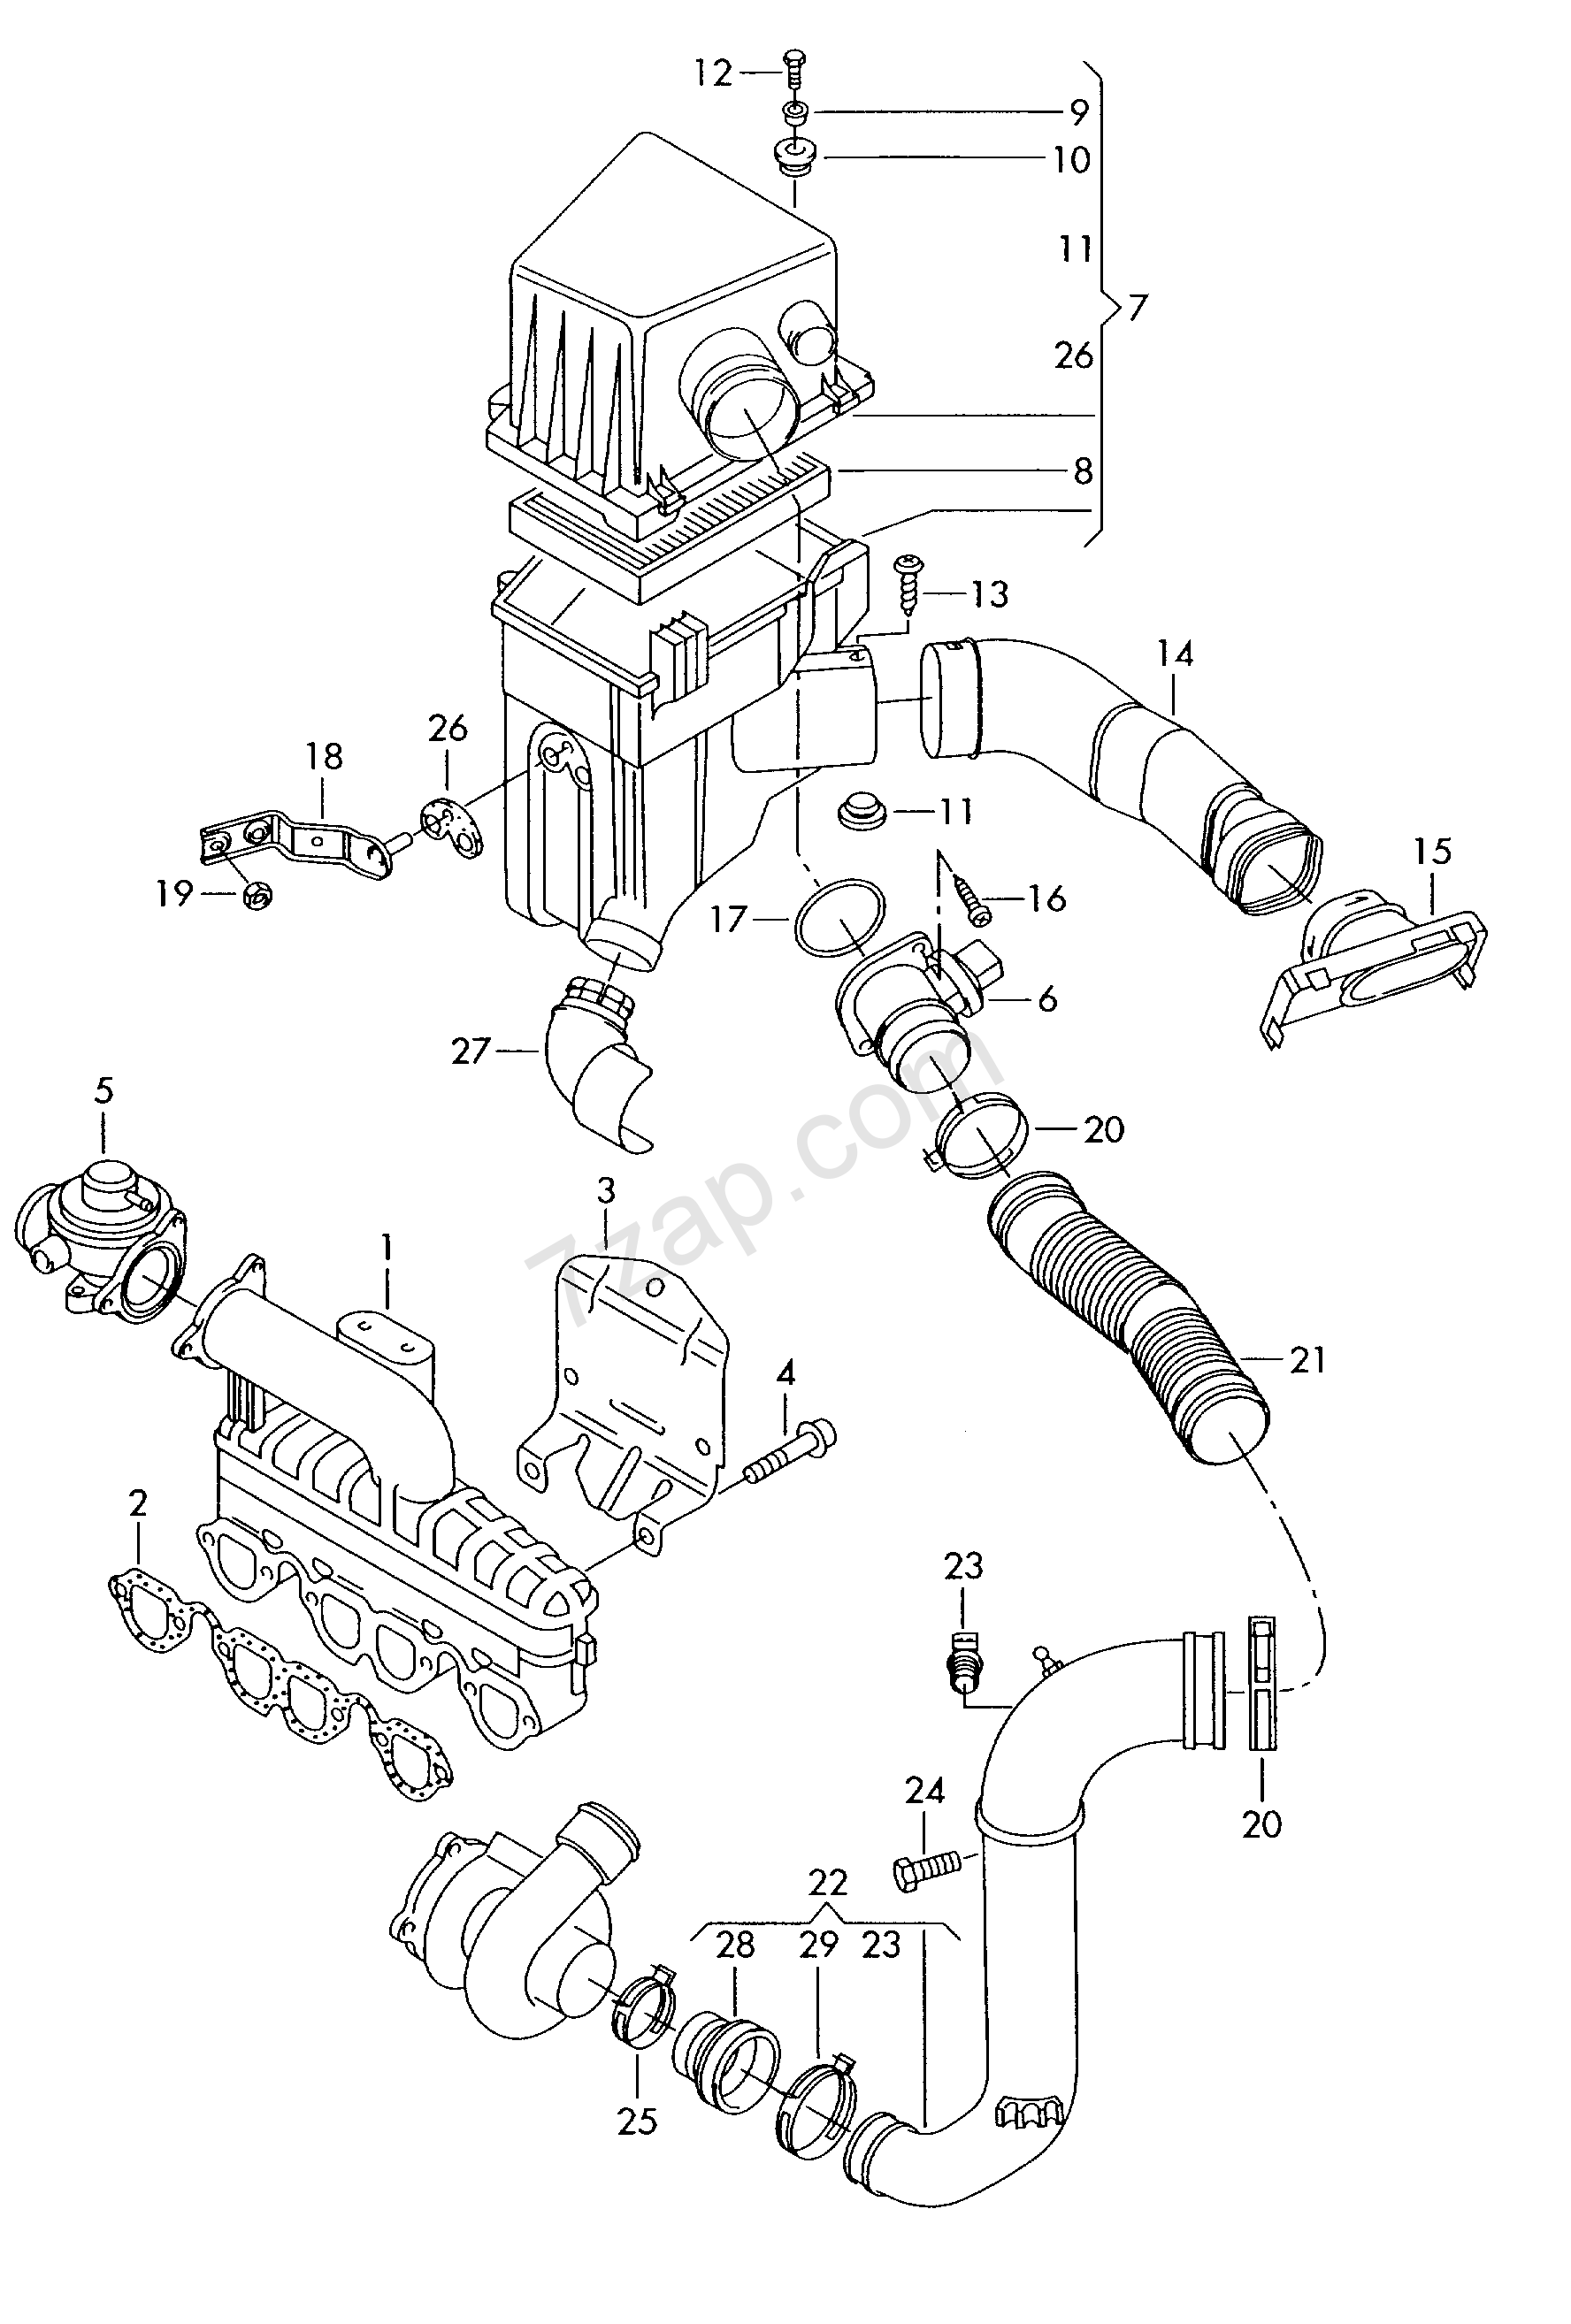 Intake Connection Air Filter With Connecting Par Polo